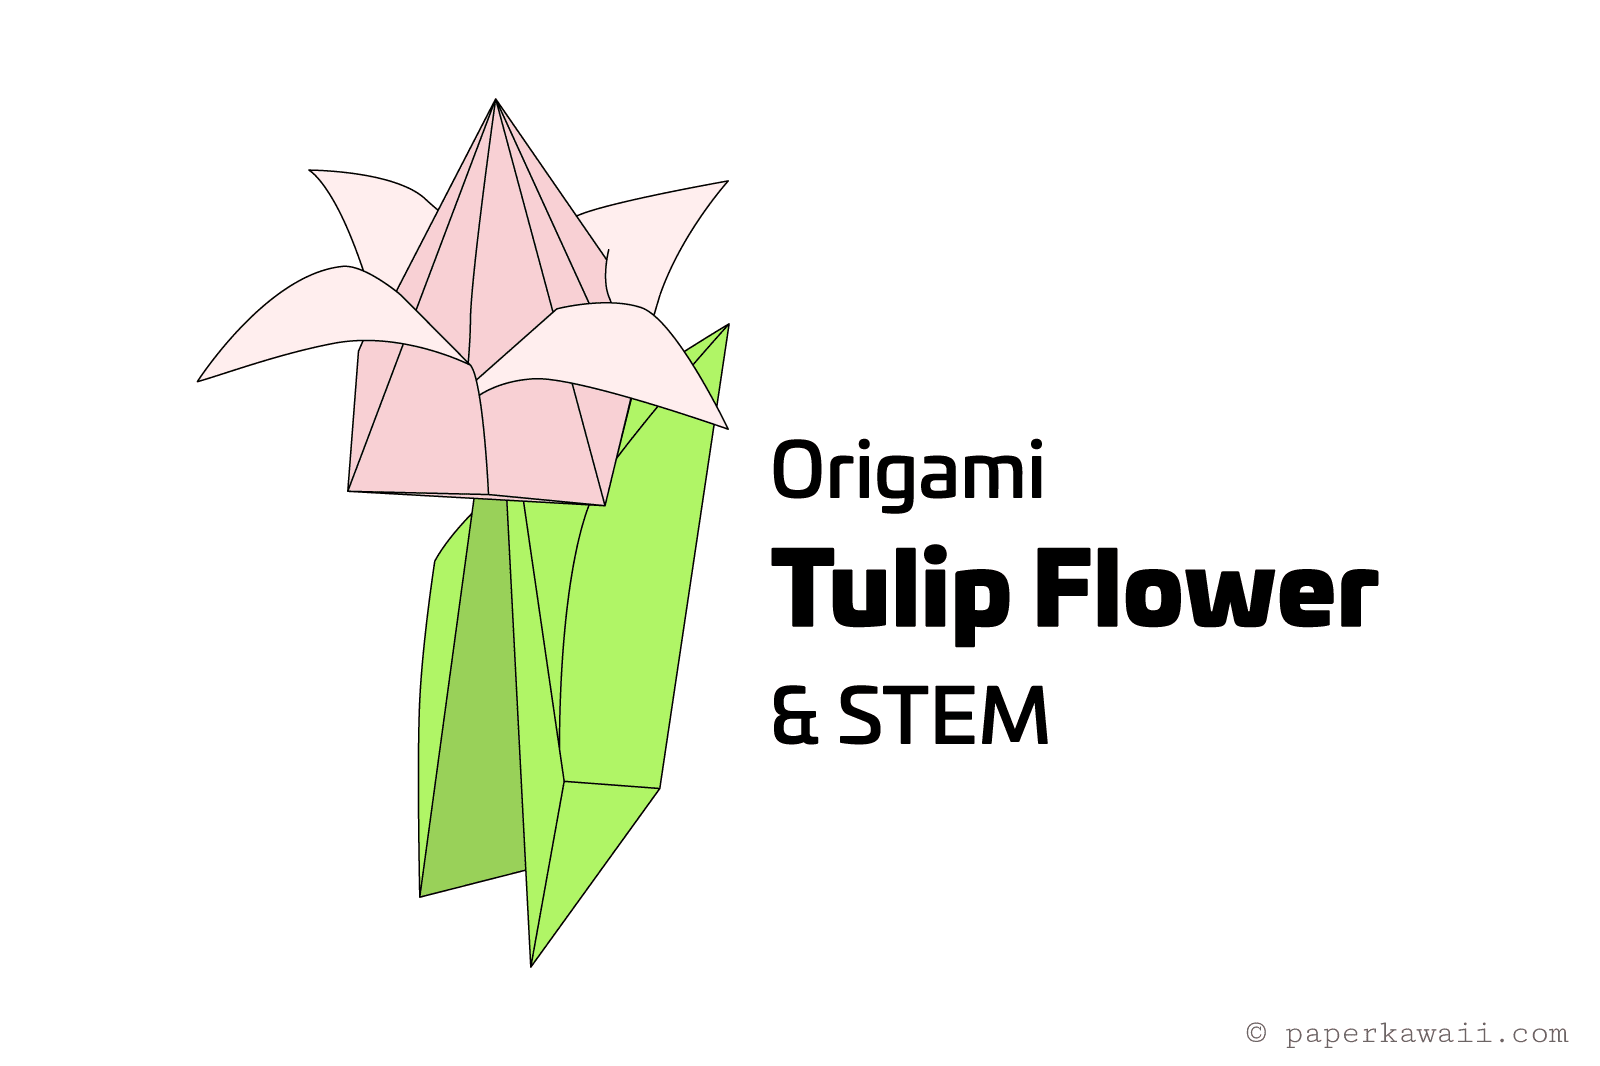 Awe Inspiring Top 10 Origami Projects For Beginners Wiring Digital Resources Funapmognl